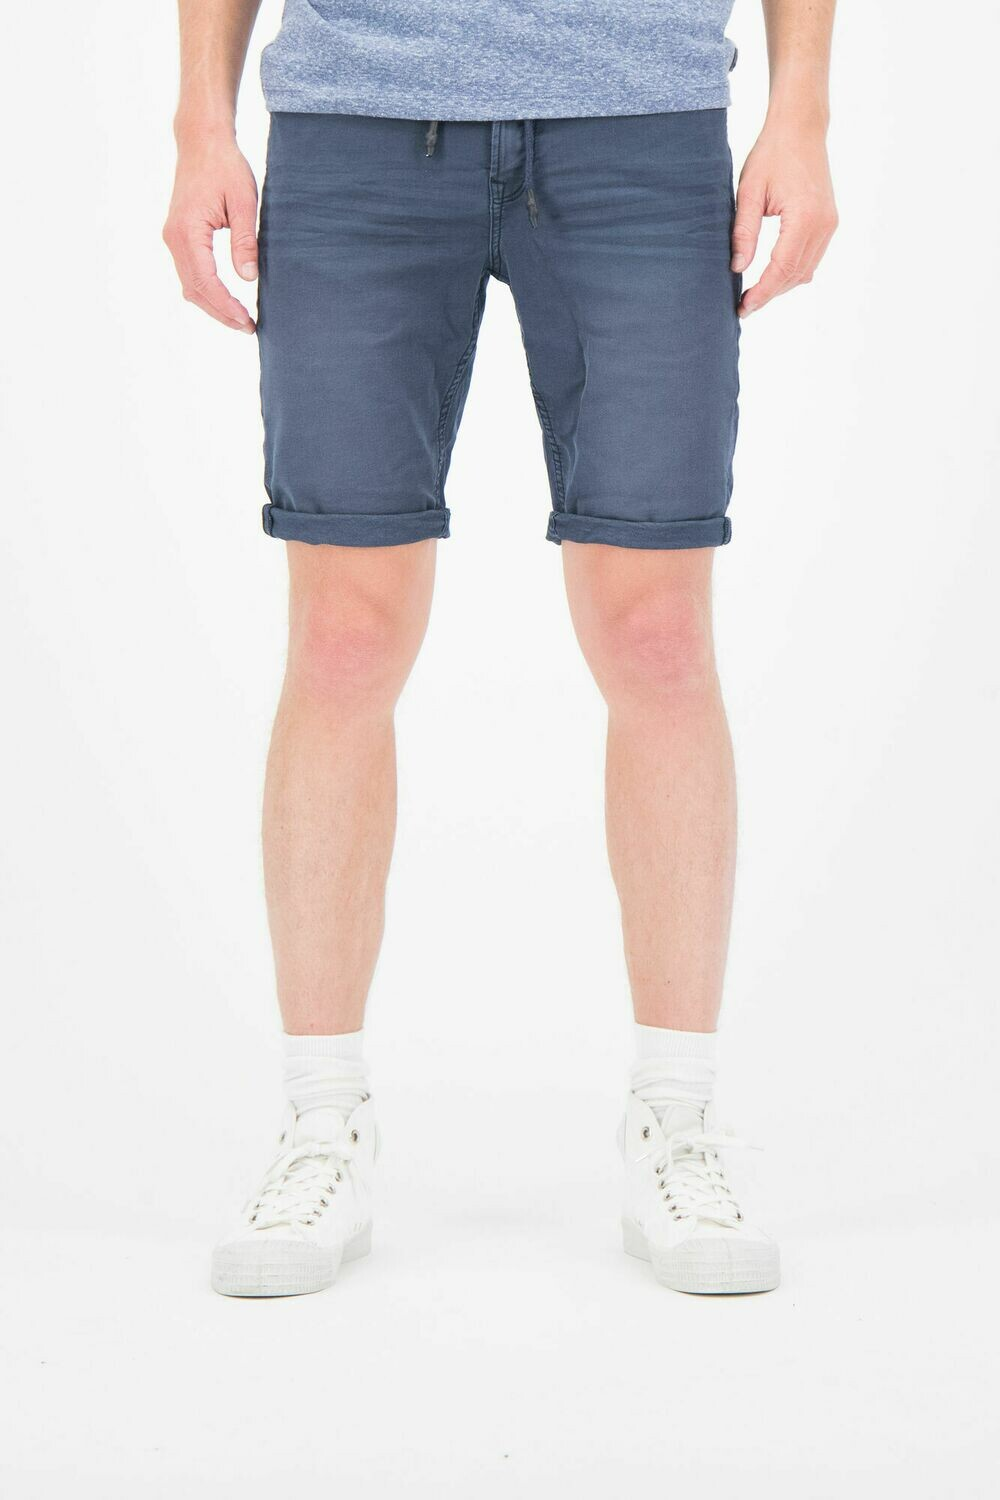 Savio Men's short